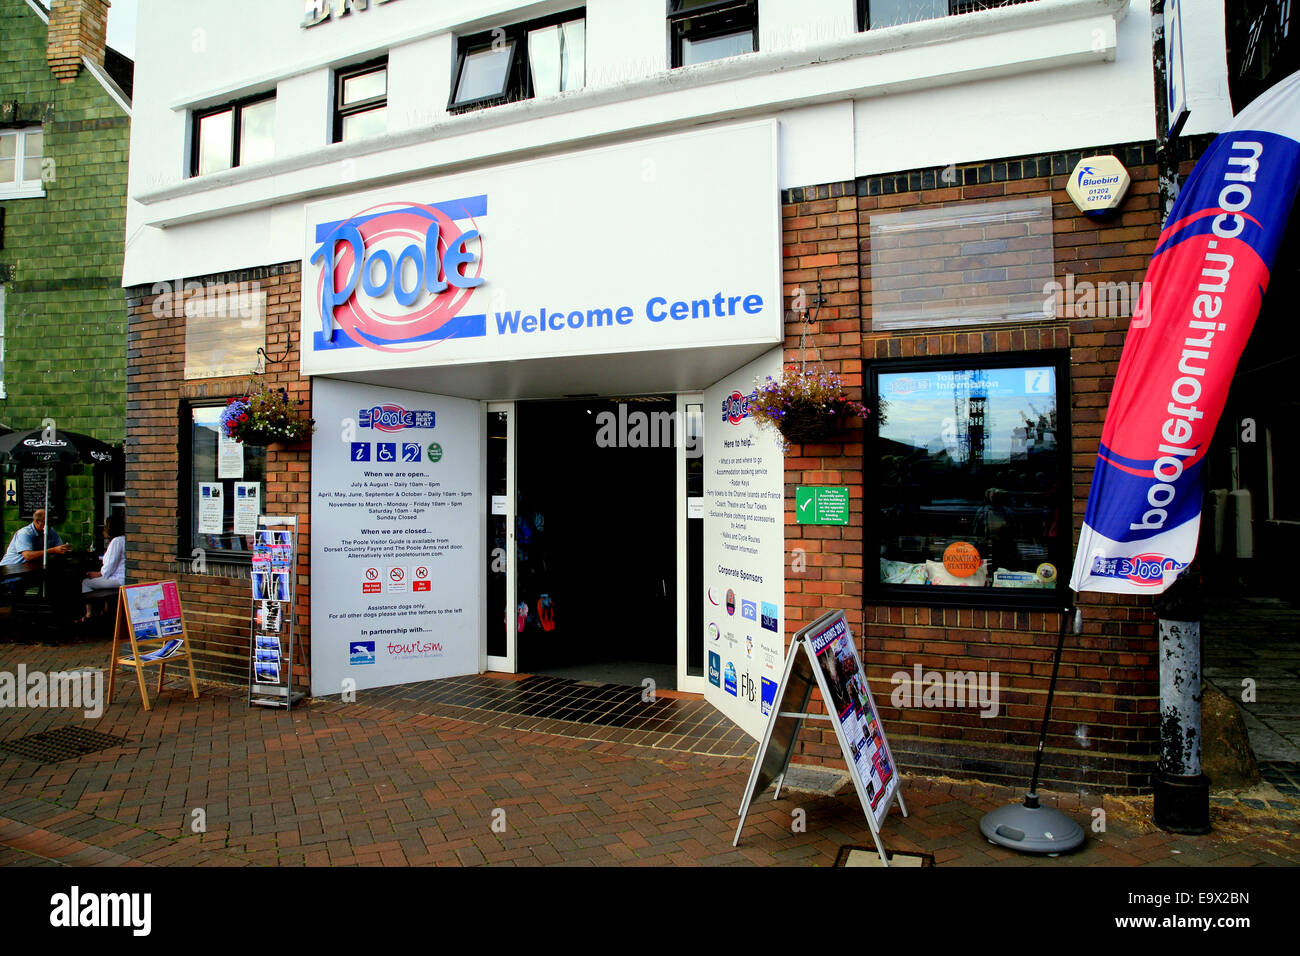 The Welcome Centre that provides tourism information on the quayside of Poole harbor, Dorset, England, UK. - Stock Image